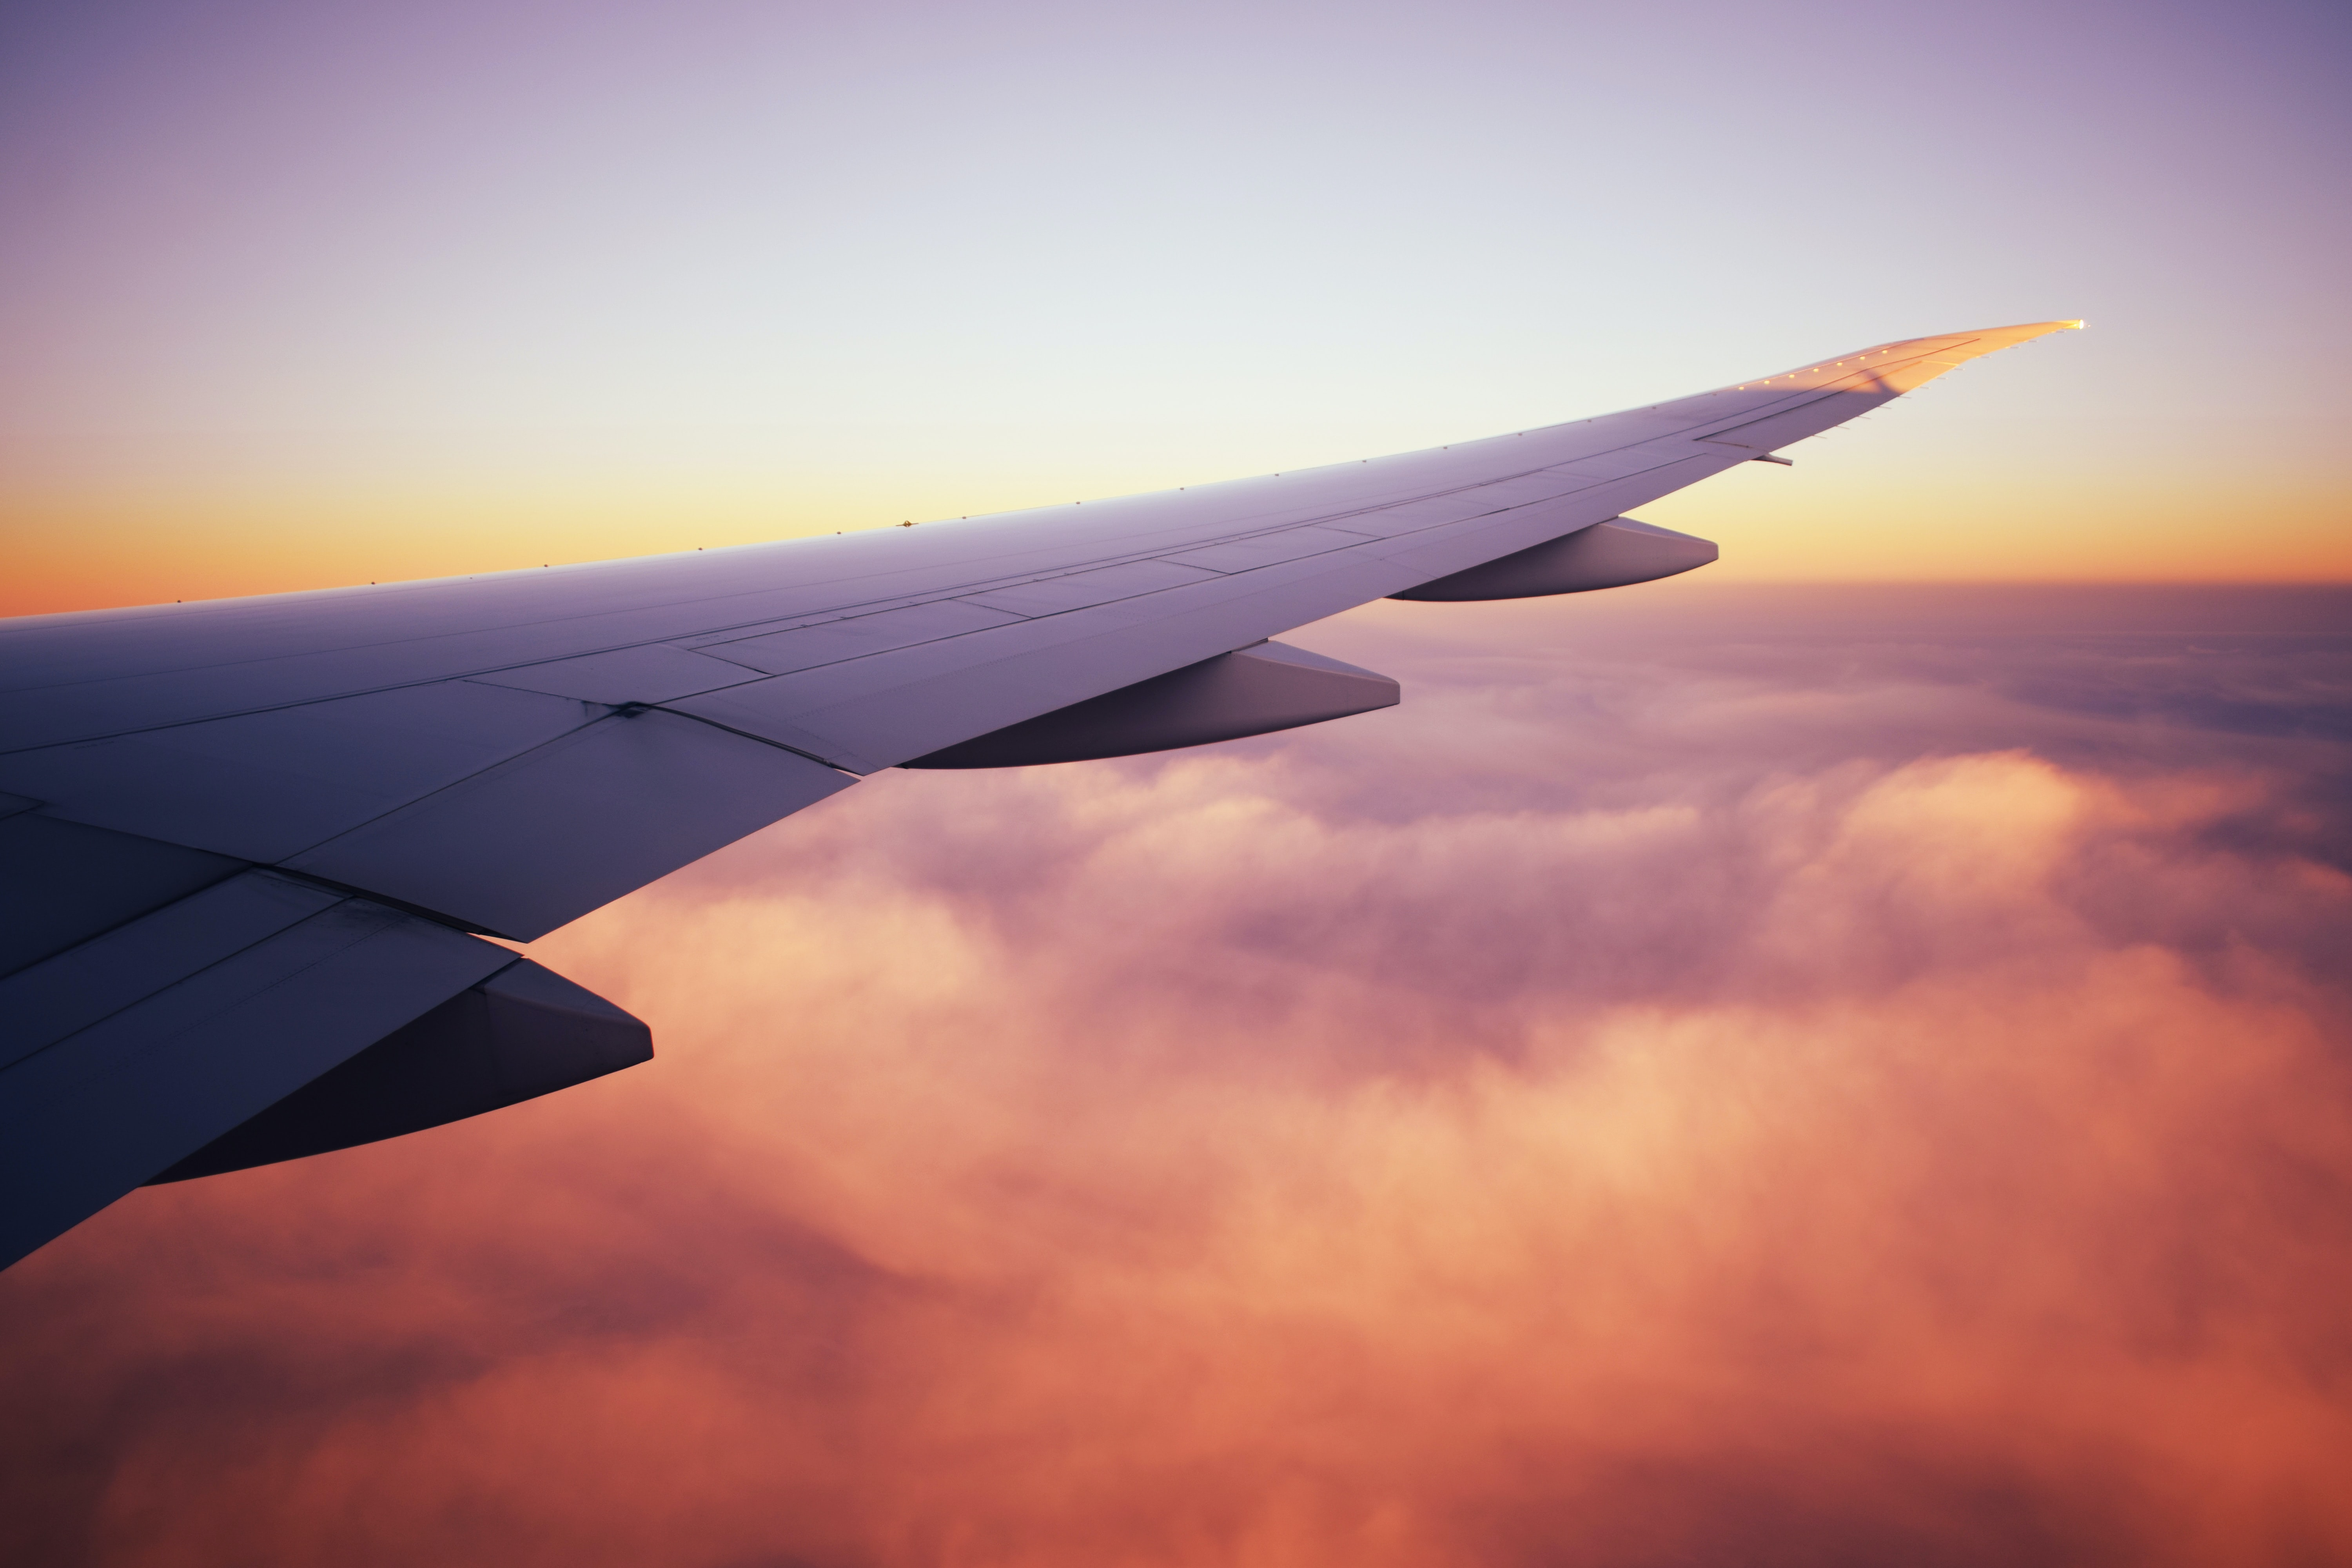 focus photo of airplane wing